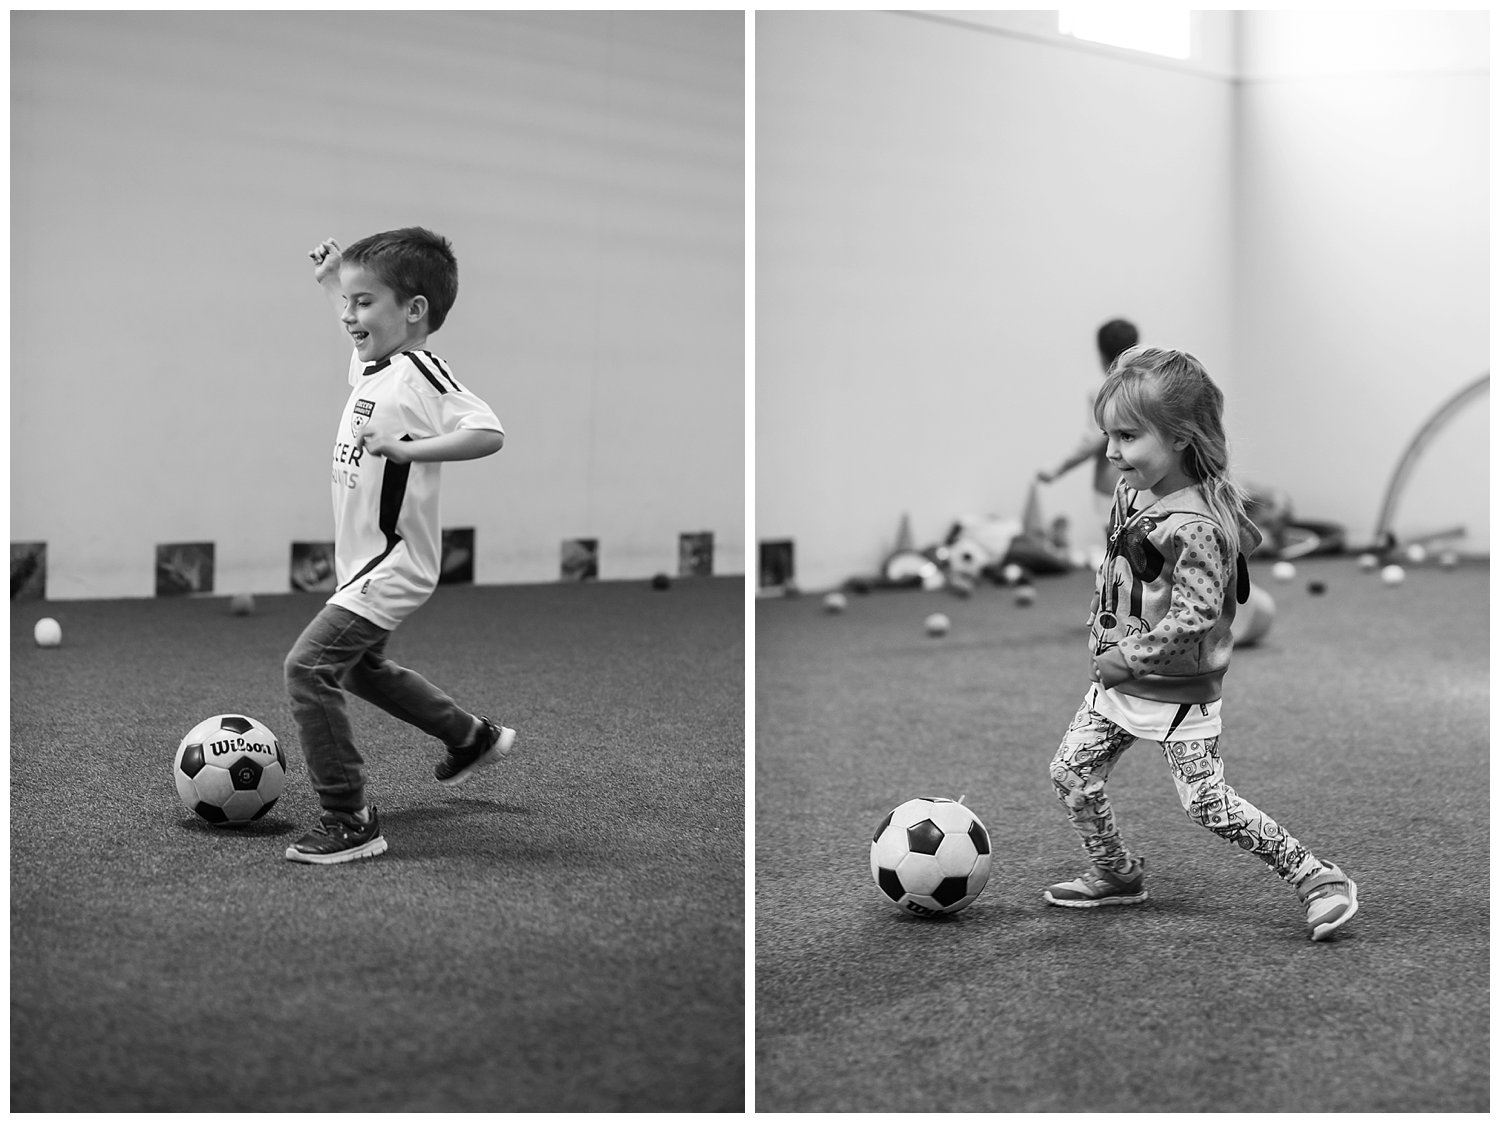 The kids showing off their soccer moves at The Reno Sports Dome. We loved this little soccer program! This is what I mean about taking pictures regardless of technical perfection. Definitely not ideal lighting here but that's not what matters... look at their happy little faces!